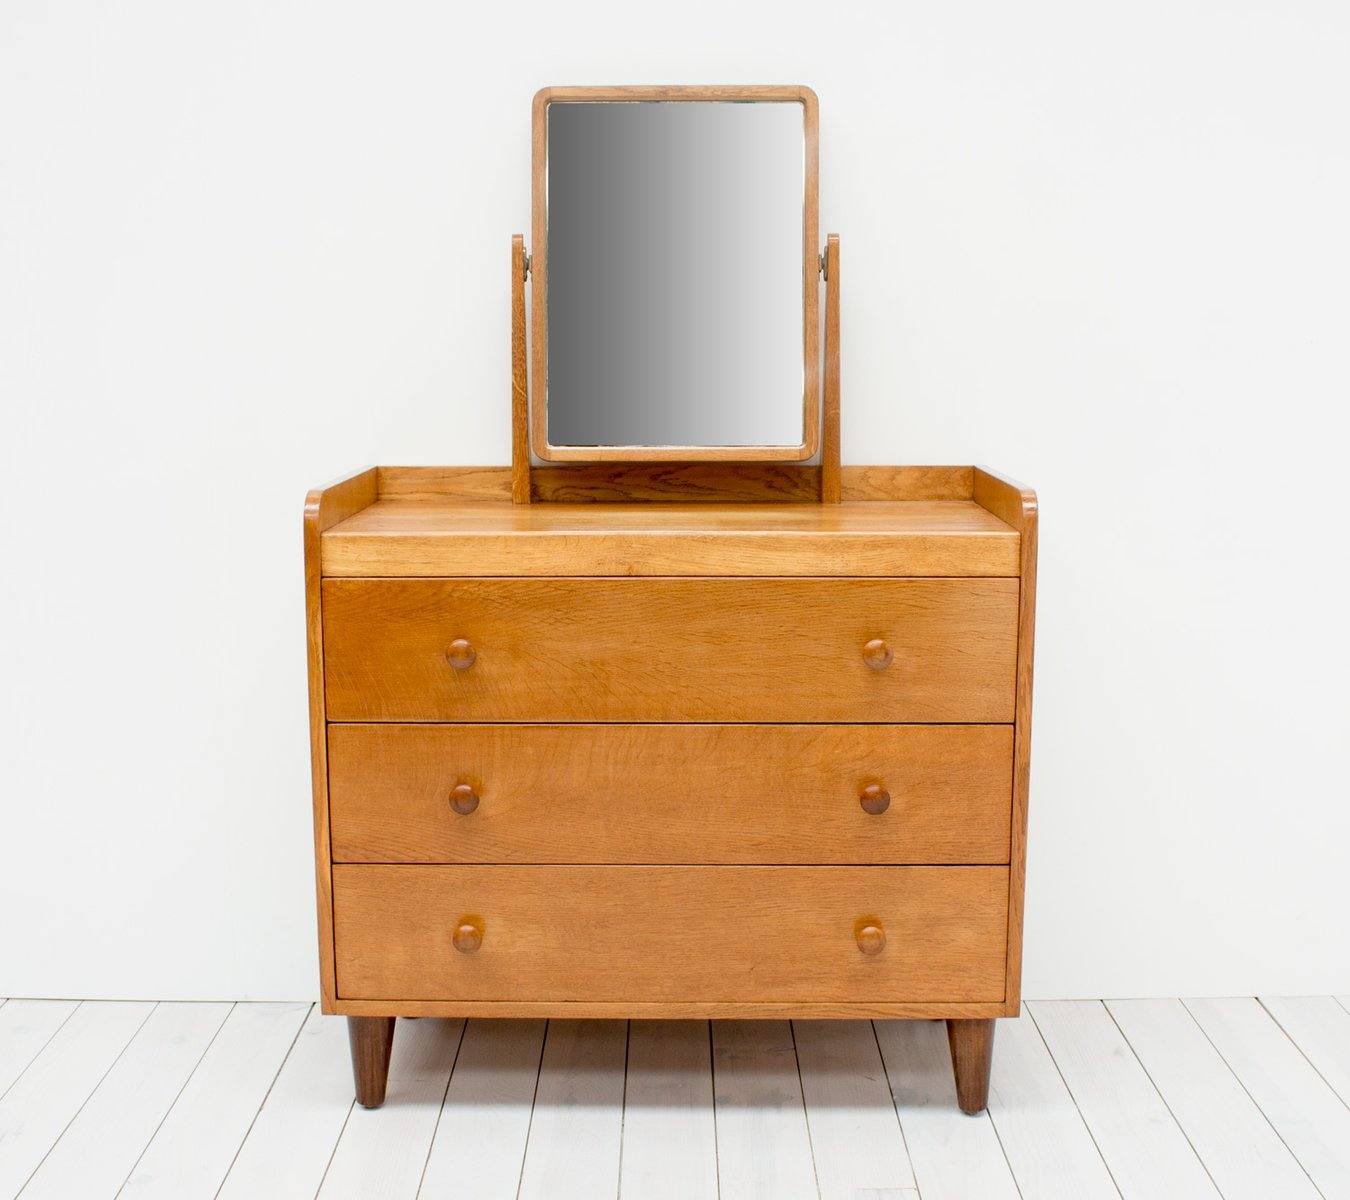 Modernist Oak Dressing Table By David Booth For Gordon Russell, 1949